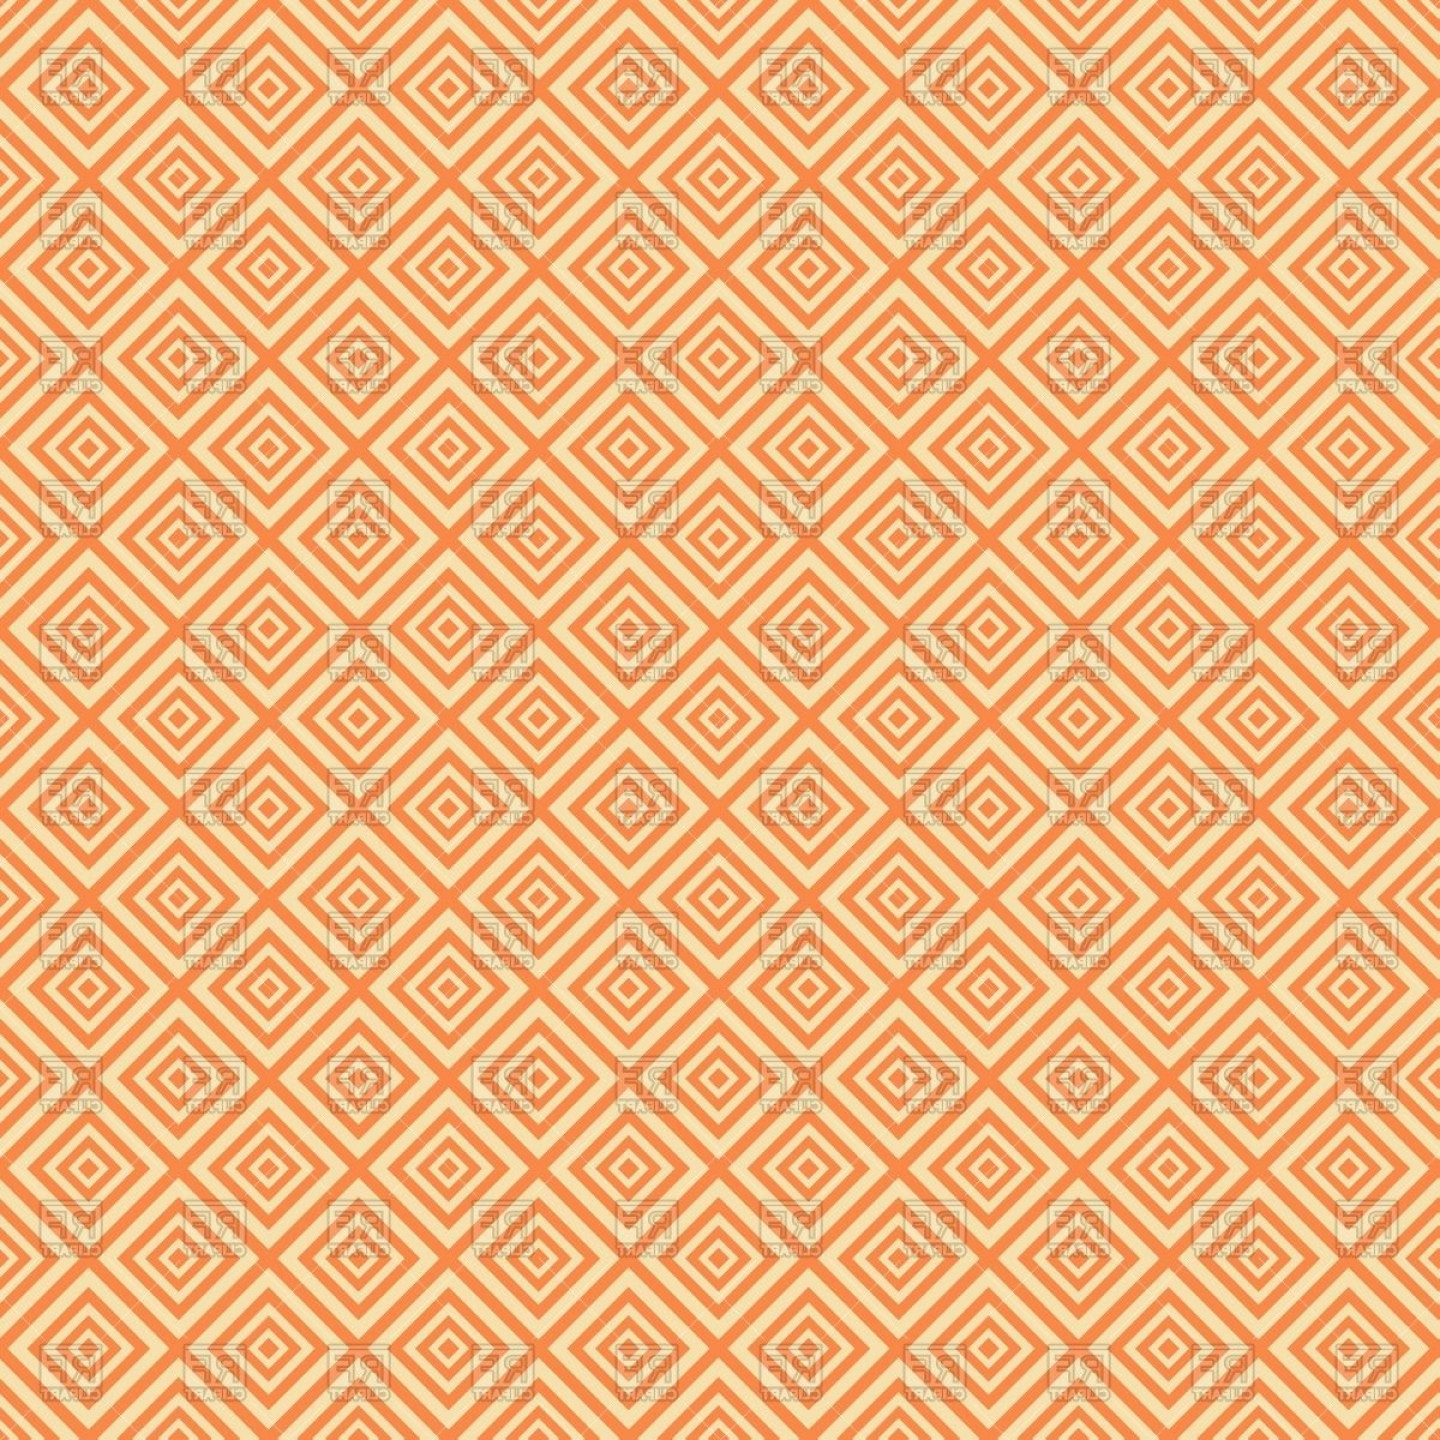 Geometric Vector B2: Beige Seamless Geometric Background With Rhombuses Vector Clipart